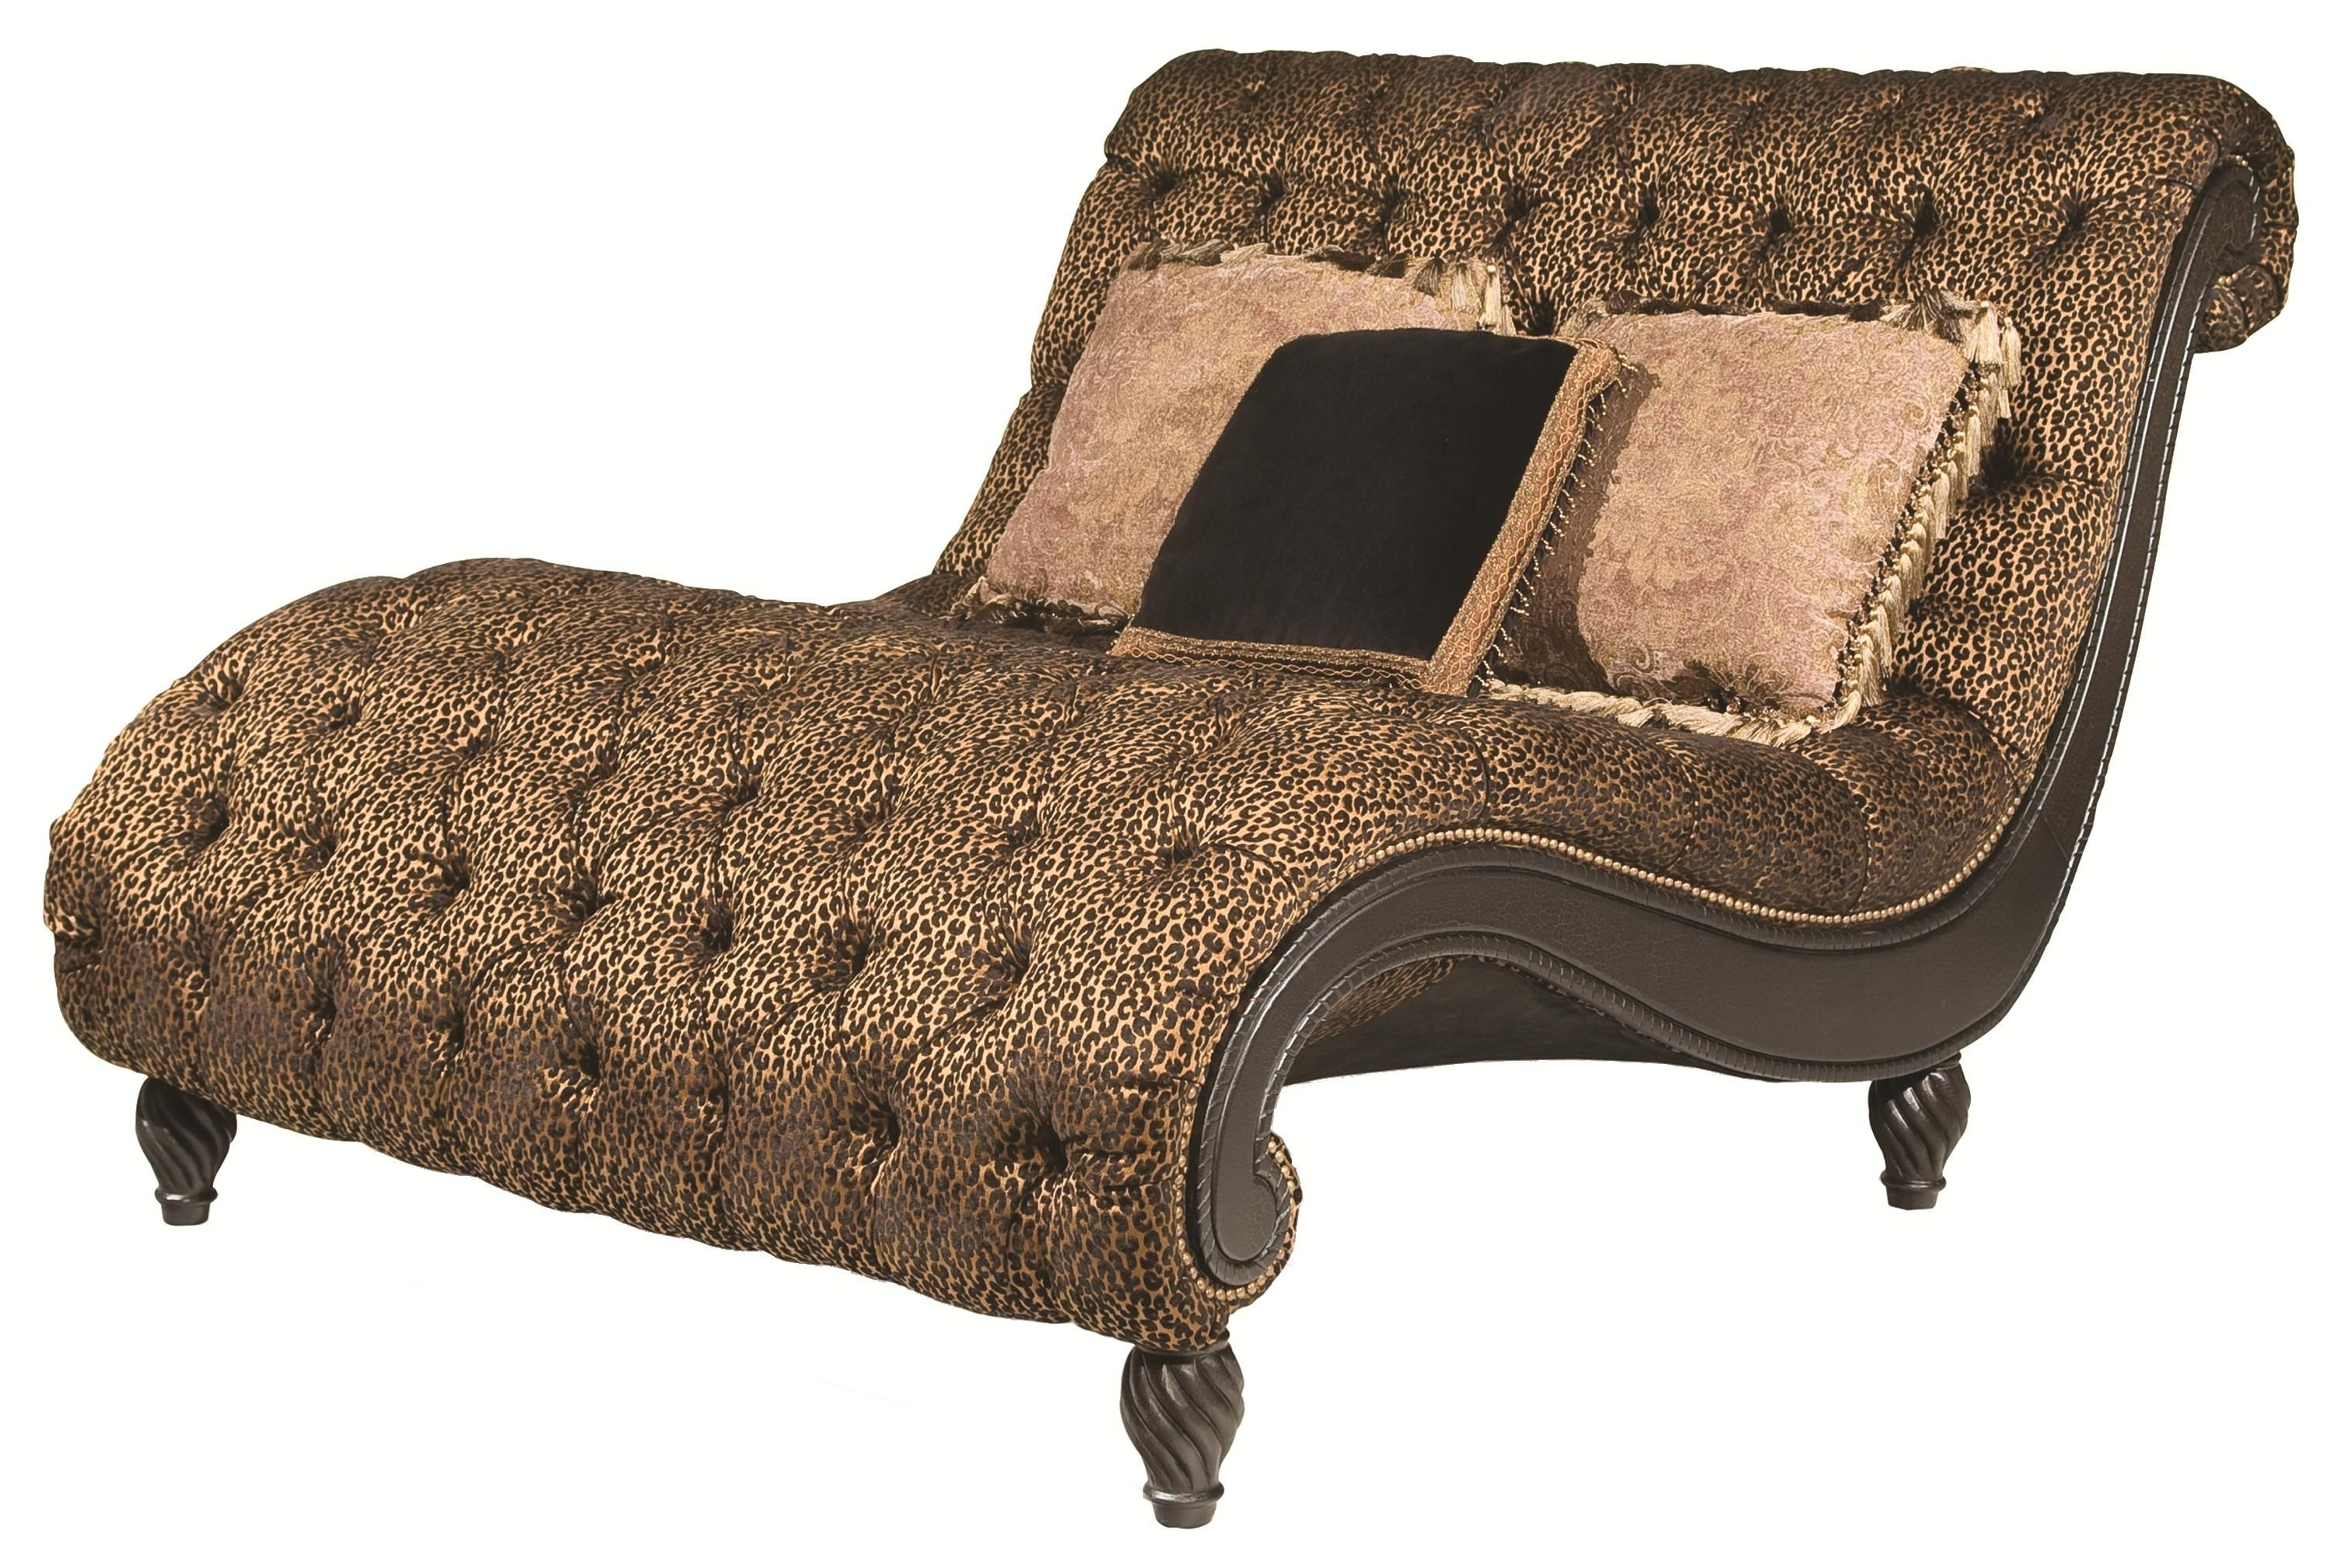 Mini Chaise Lounges In Well Known Dinah Chaiserachlin Classics (View 13 of 15)